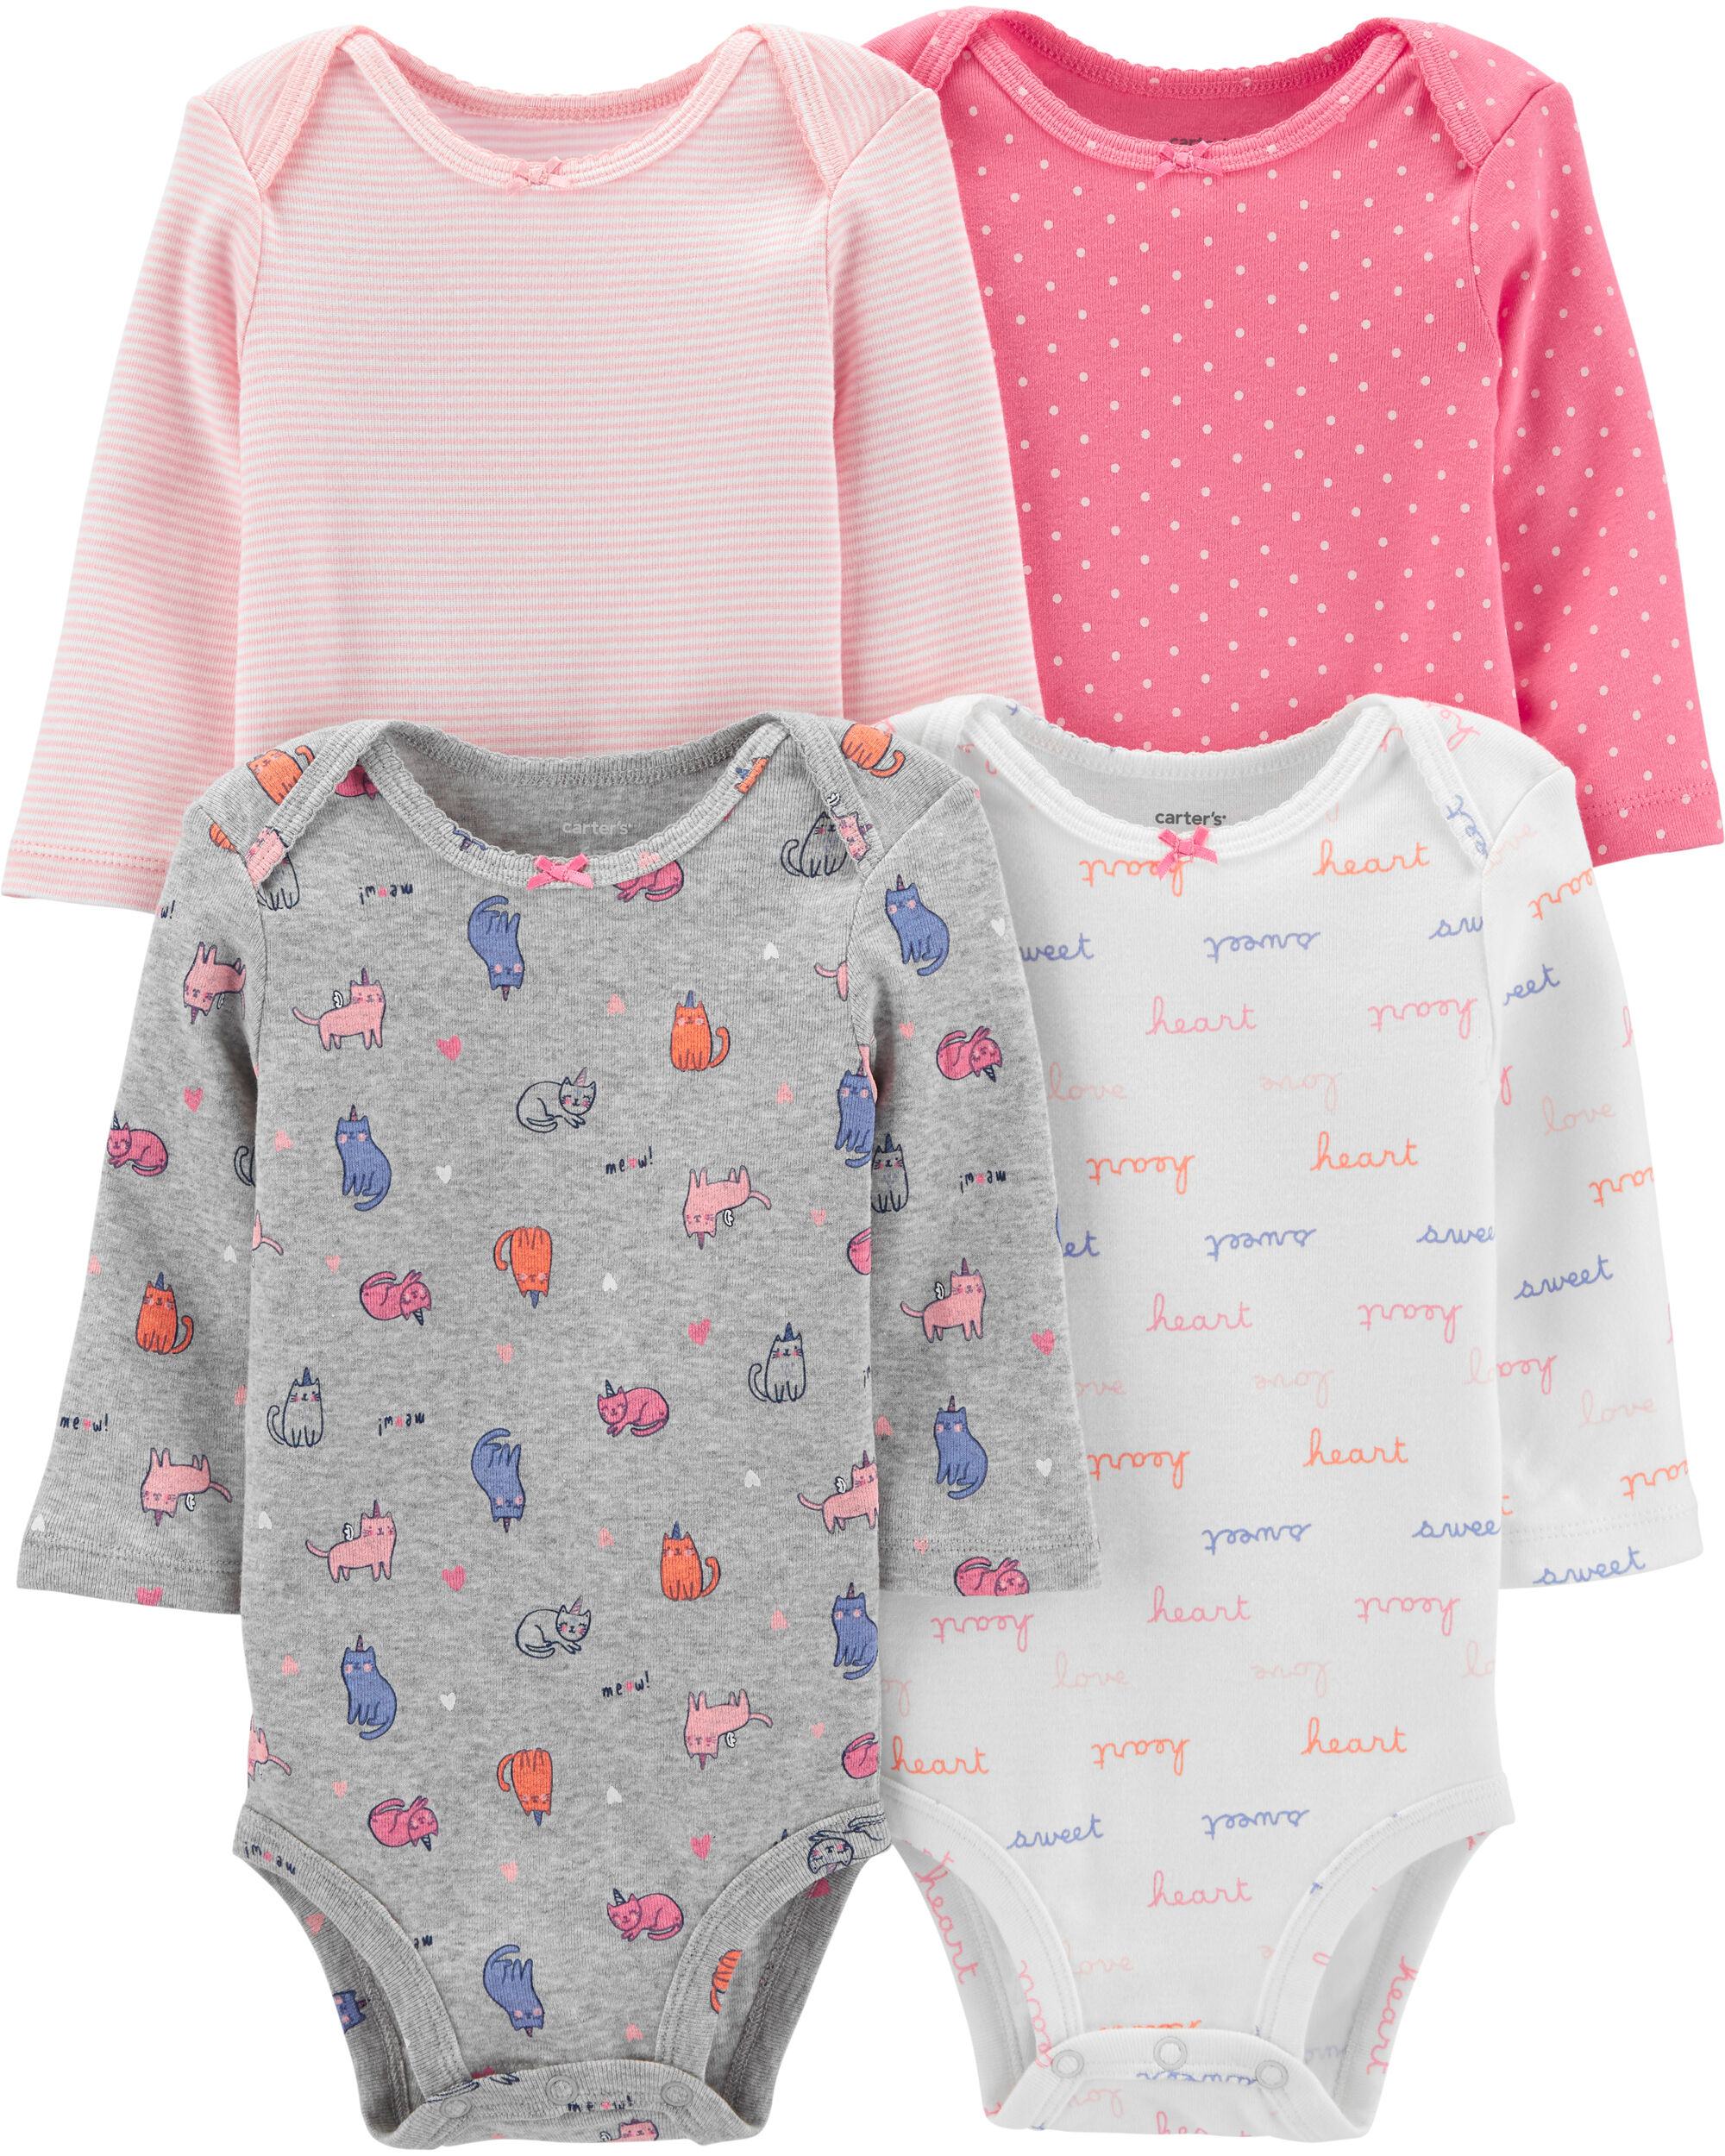 *CLEARANCE*4-Pack Cats Original Bodysuits